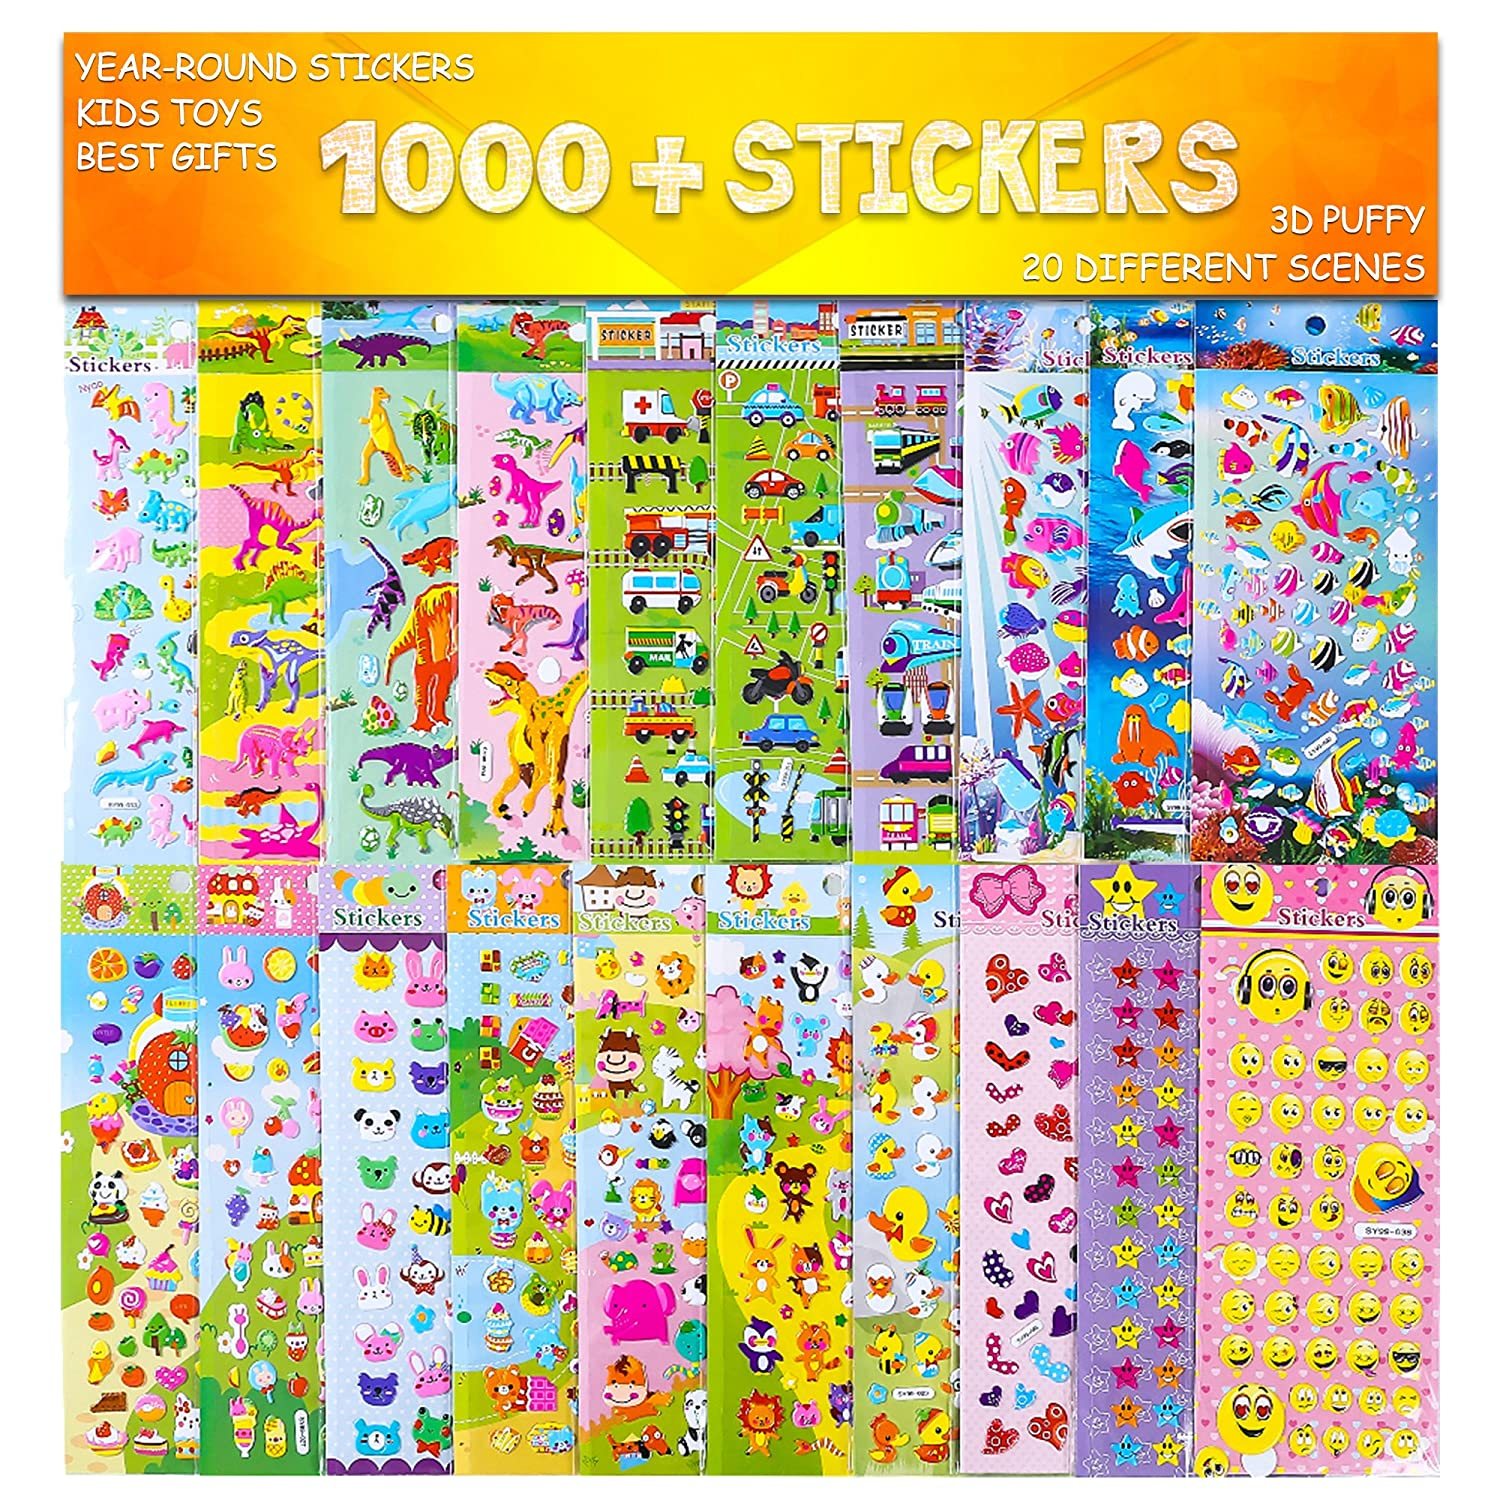 Stickers 1000 and 20 different scenes 3d puffy stickers year round sticker bulk pack for teachersstudents toddlersscrapbooking girl boy birthday